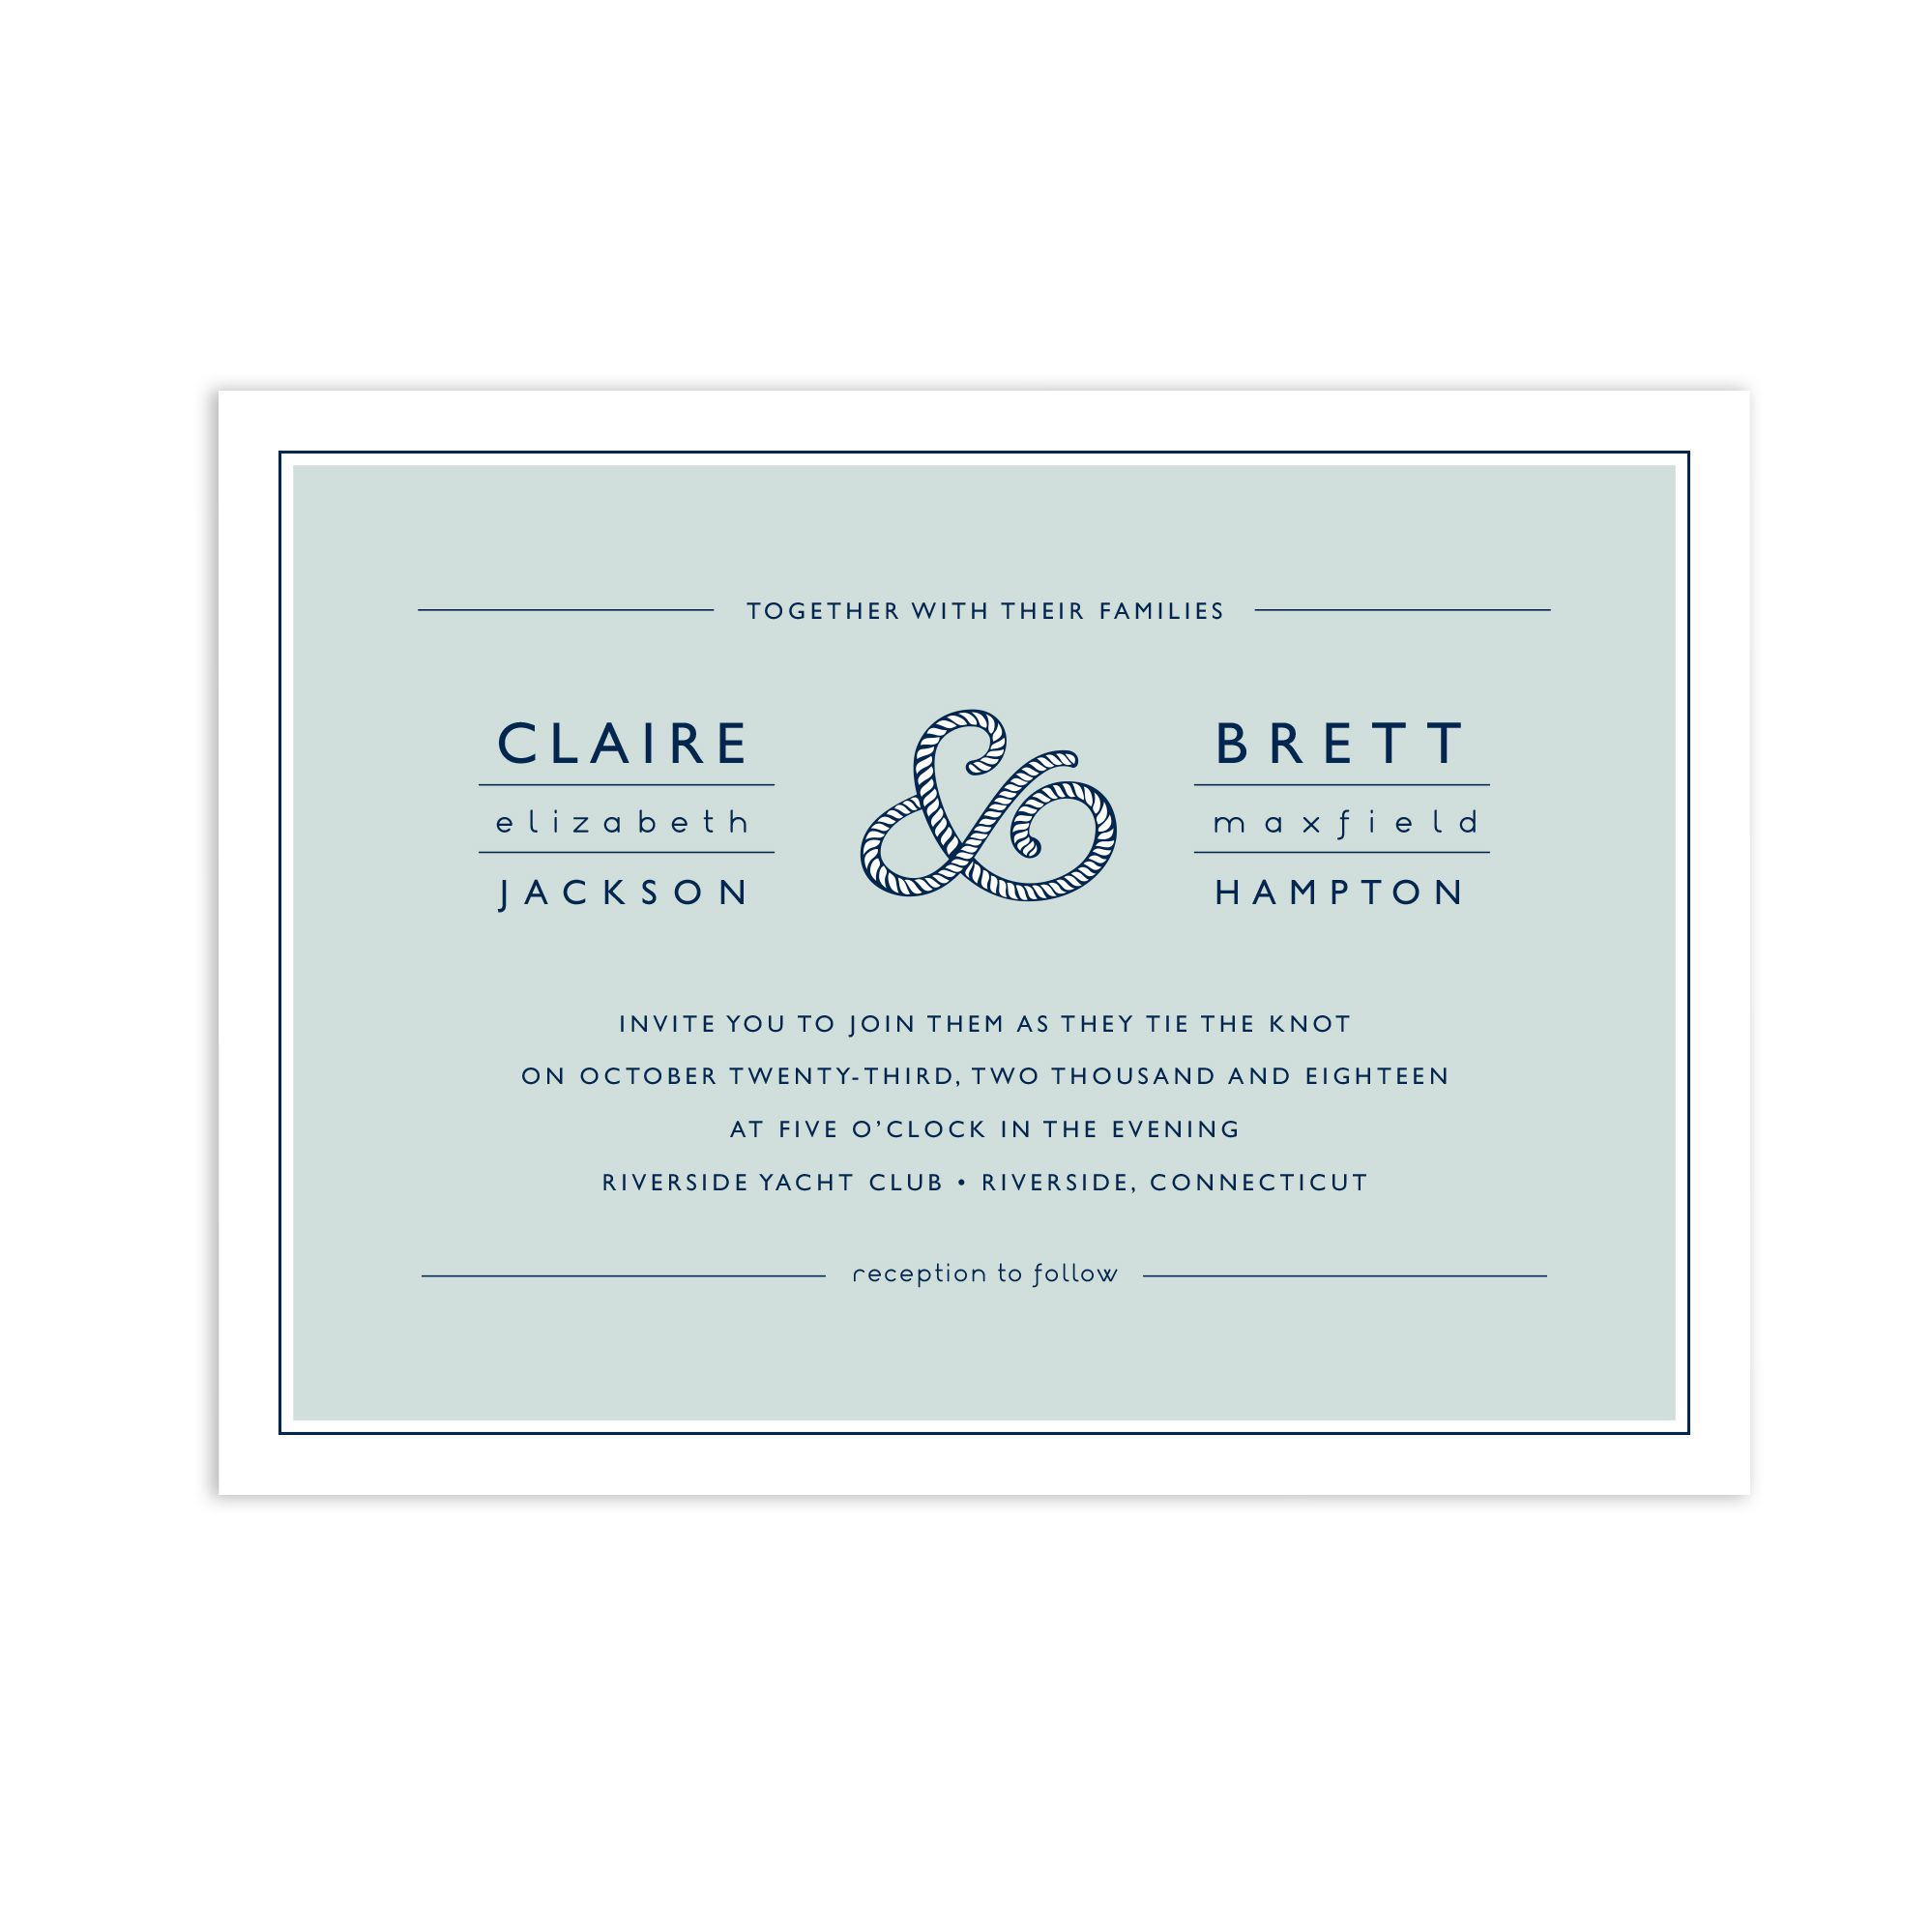 13 Nautical Wedding Invitations That Are Perfect for Your